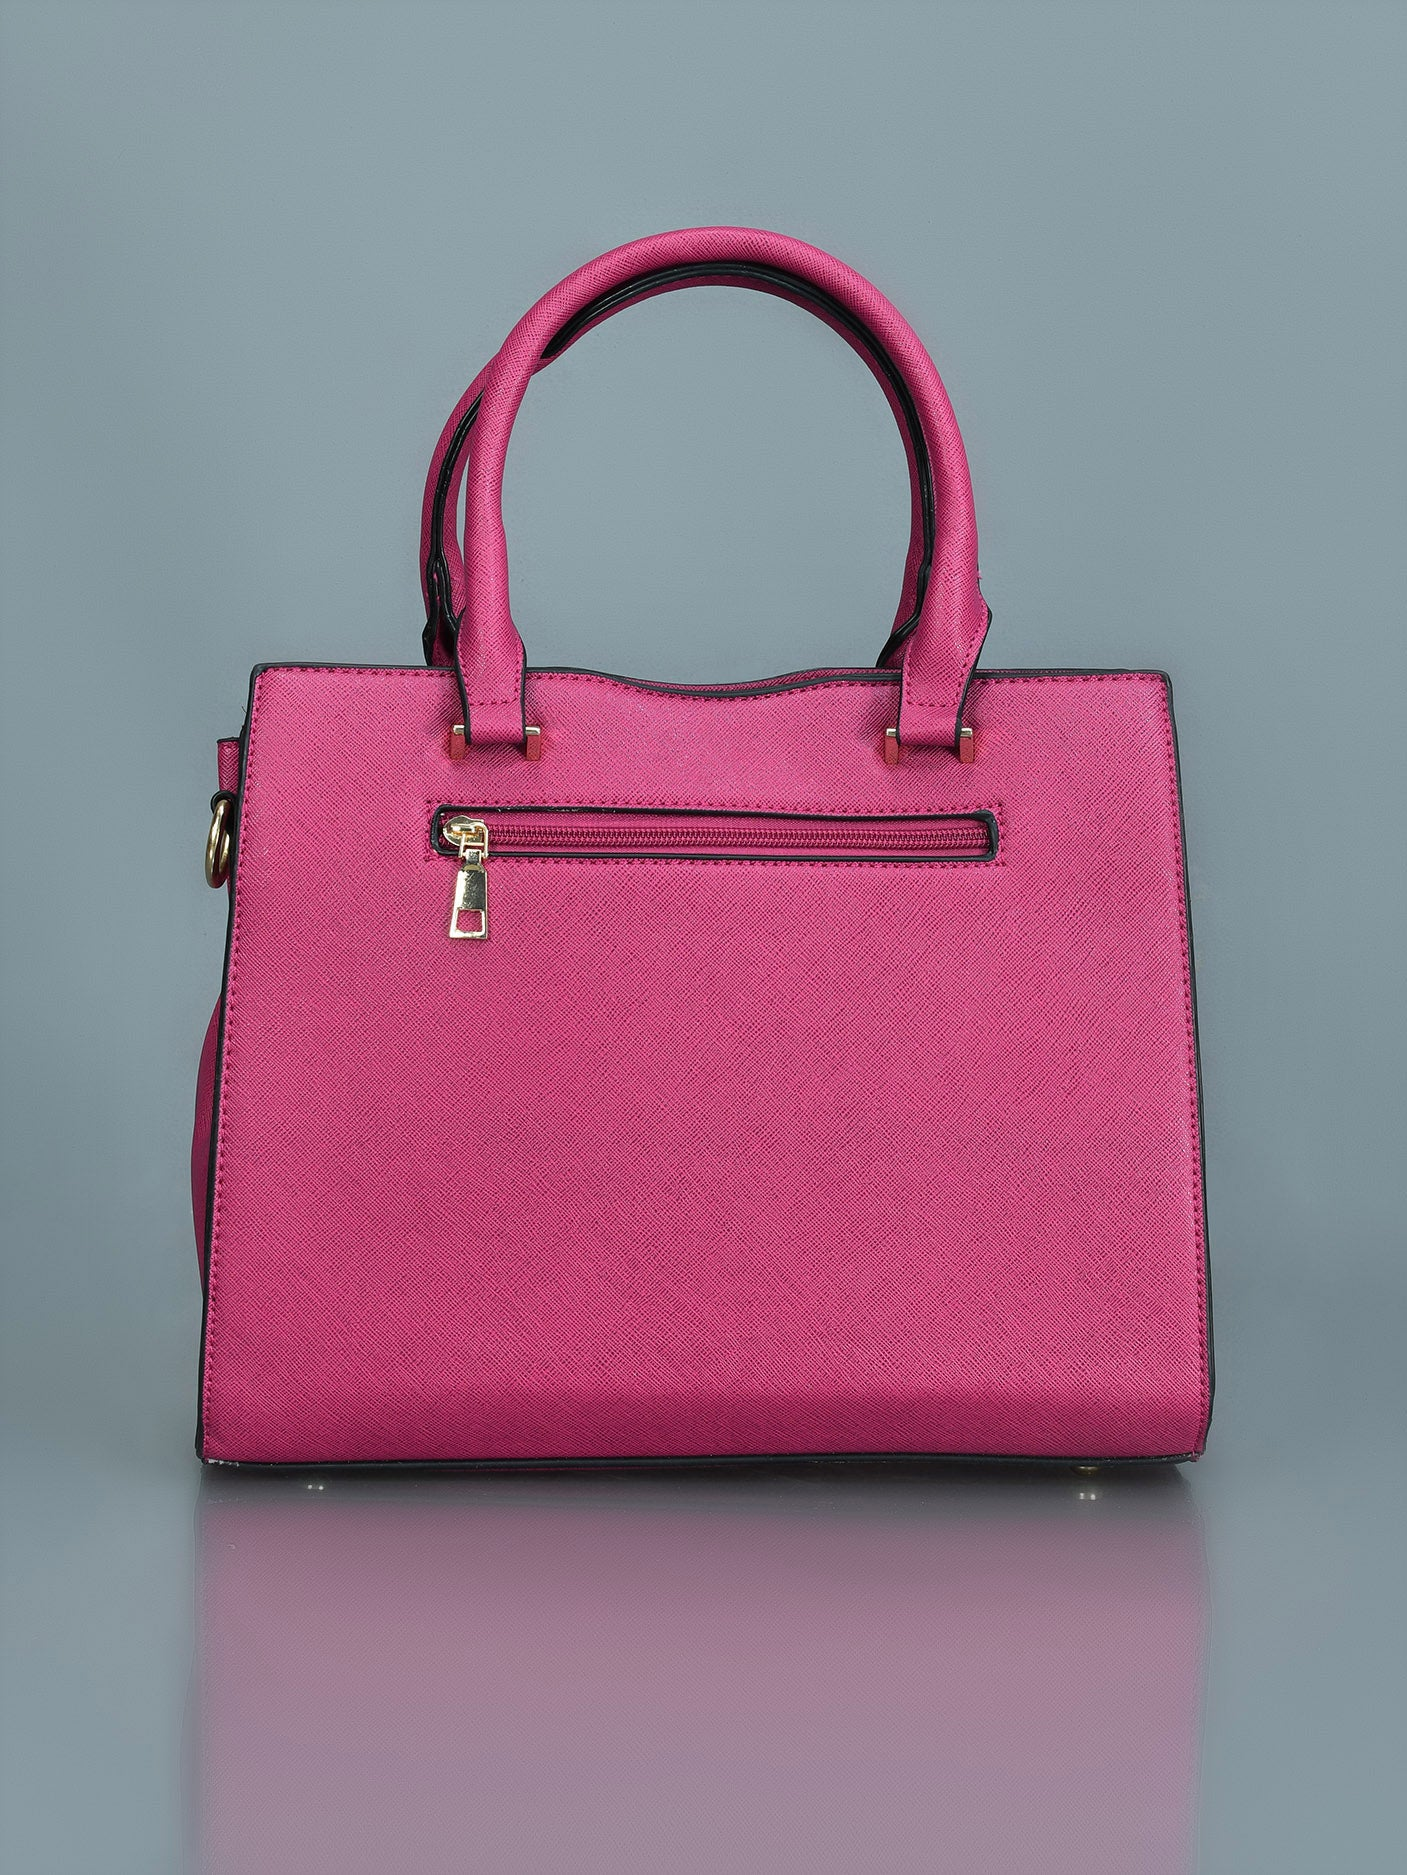 Envelope Shaped Handbag